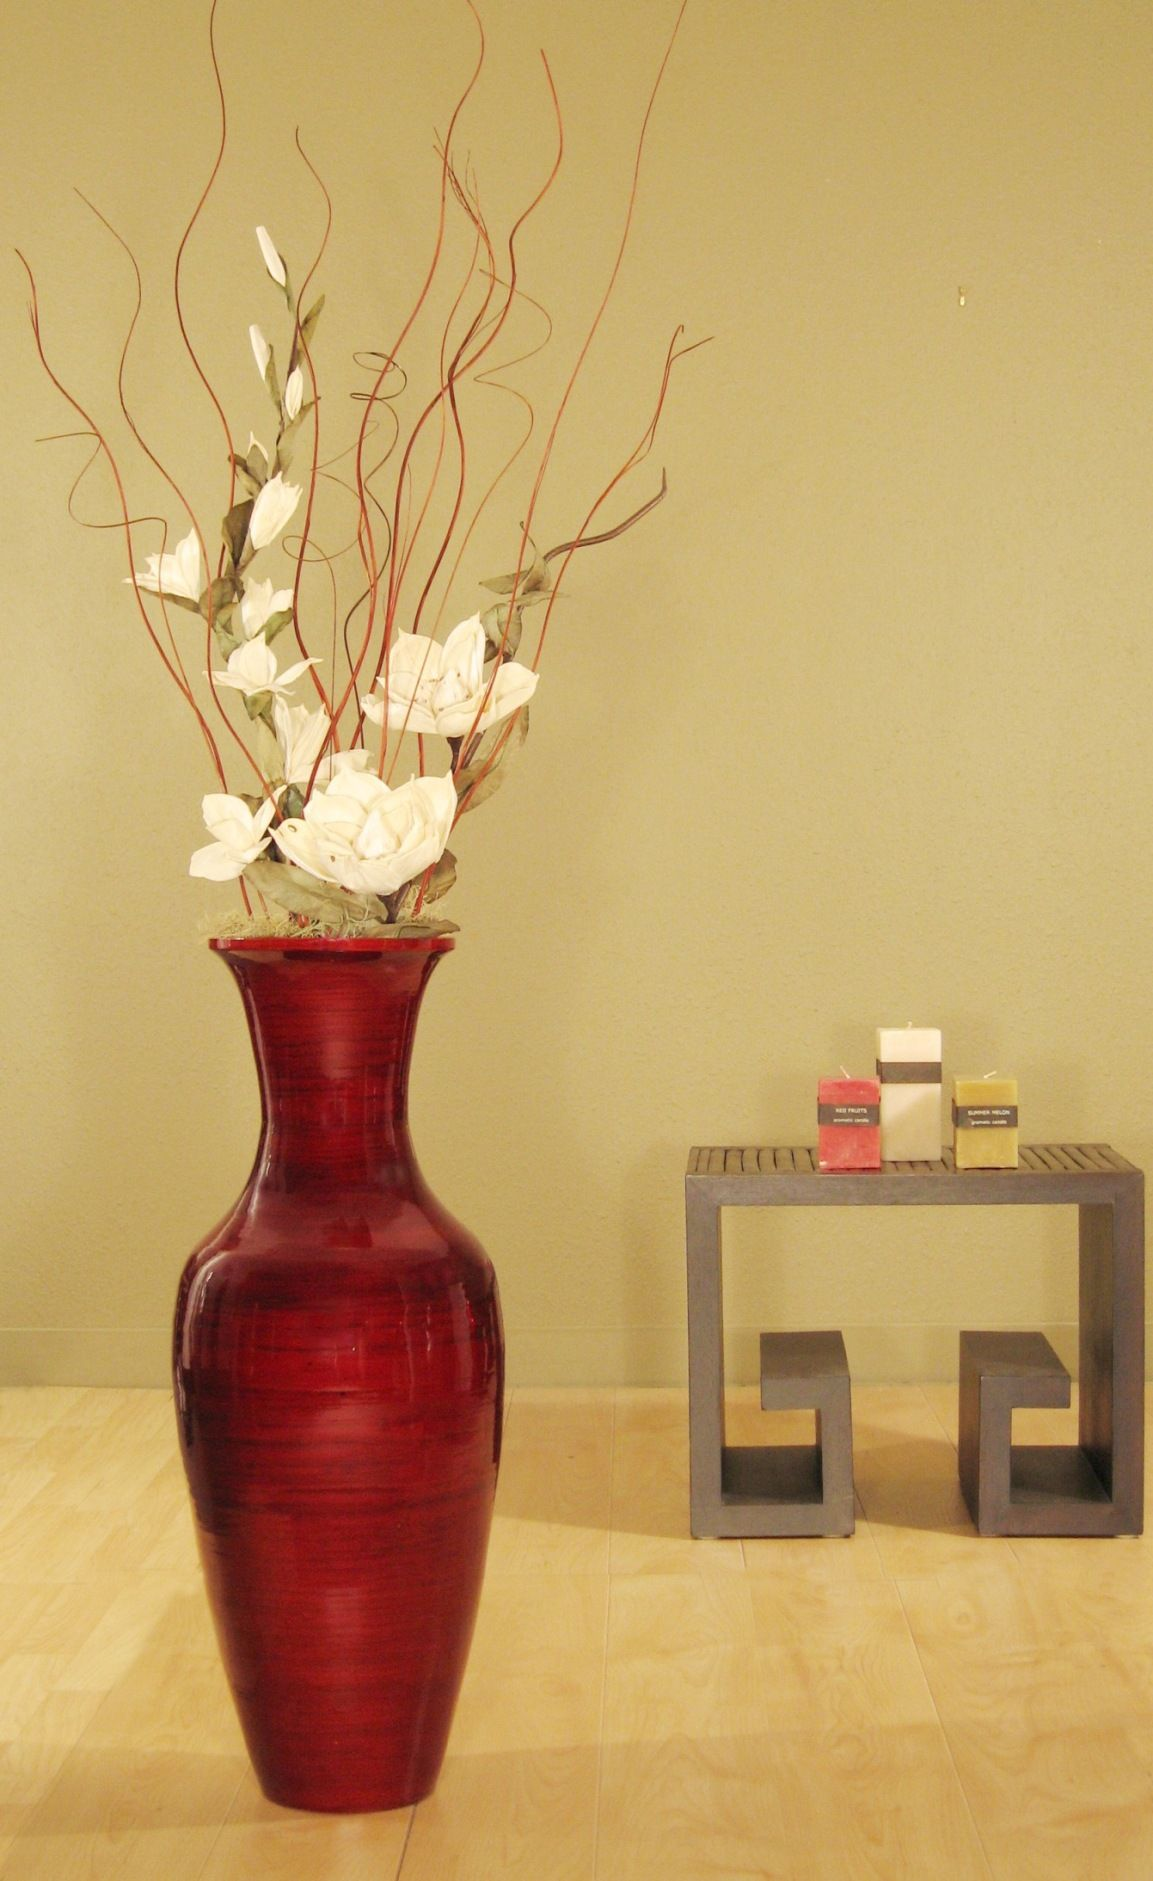 Accent your home decor with this bamboo floor vase and white